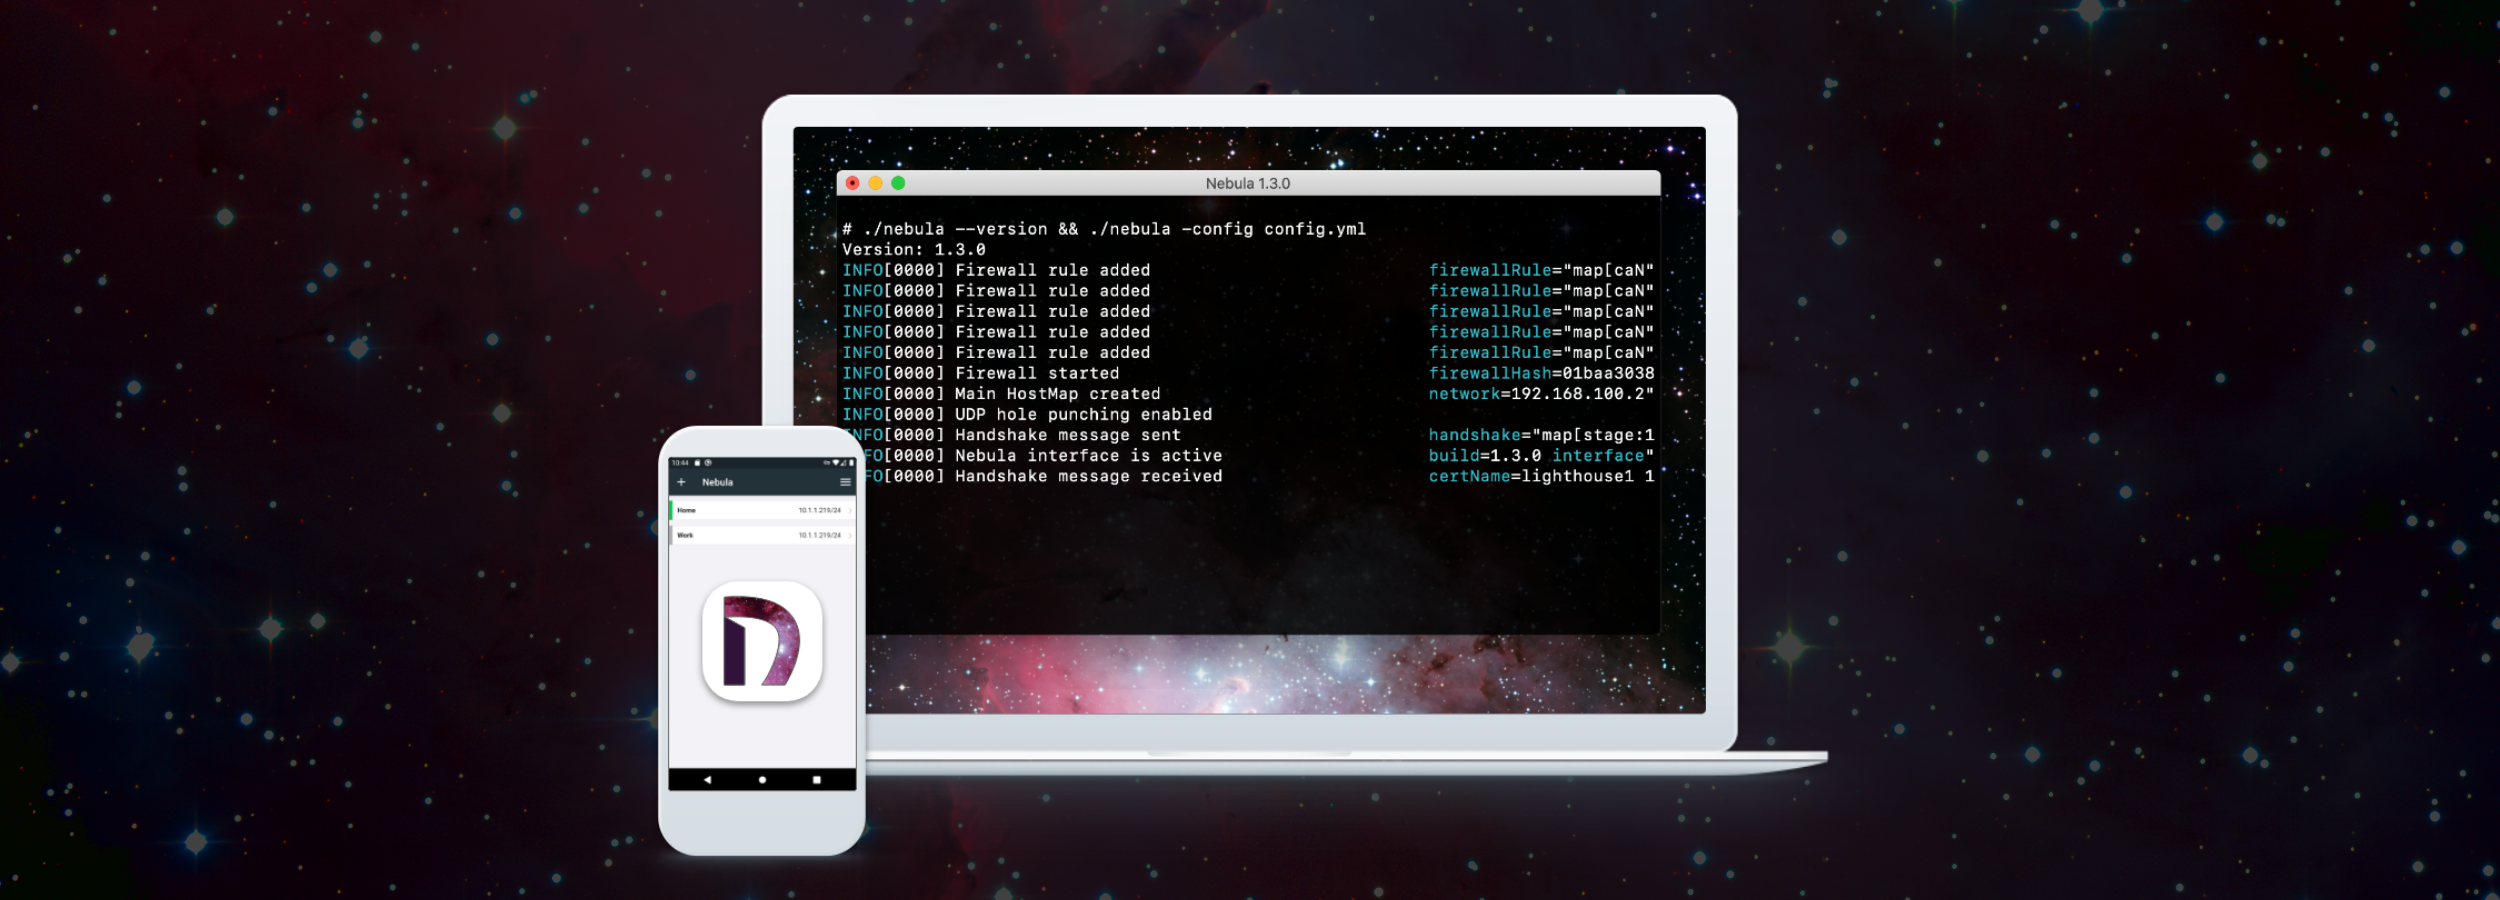 Screenshot of Nebula running on a laptop and a mobile phone